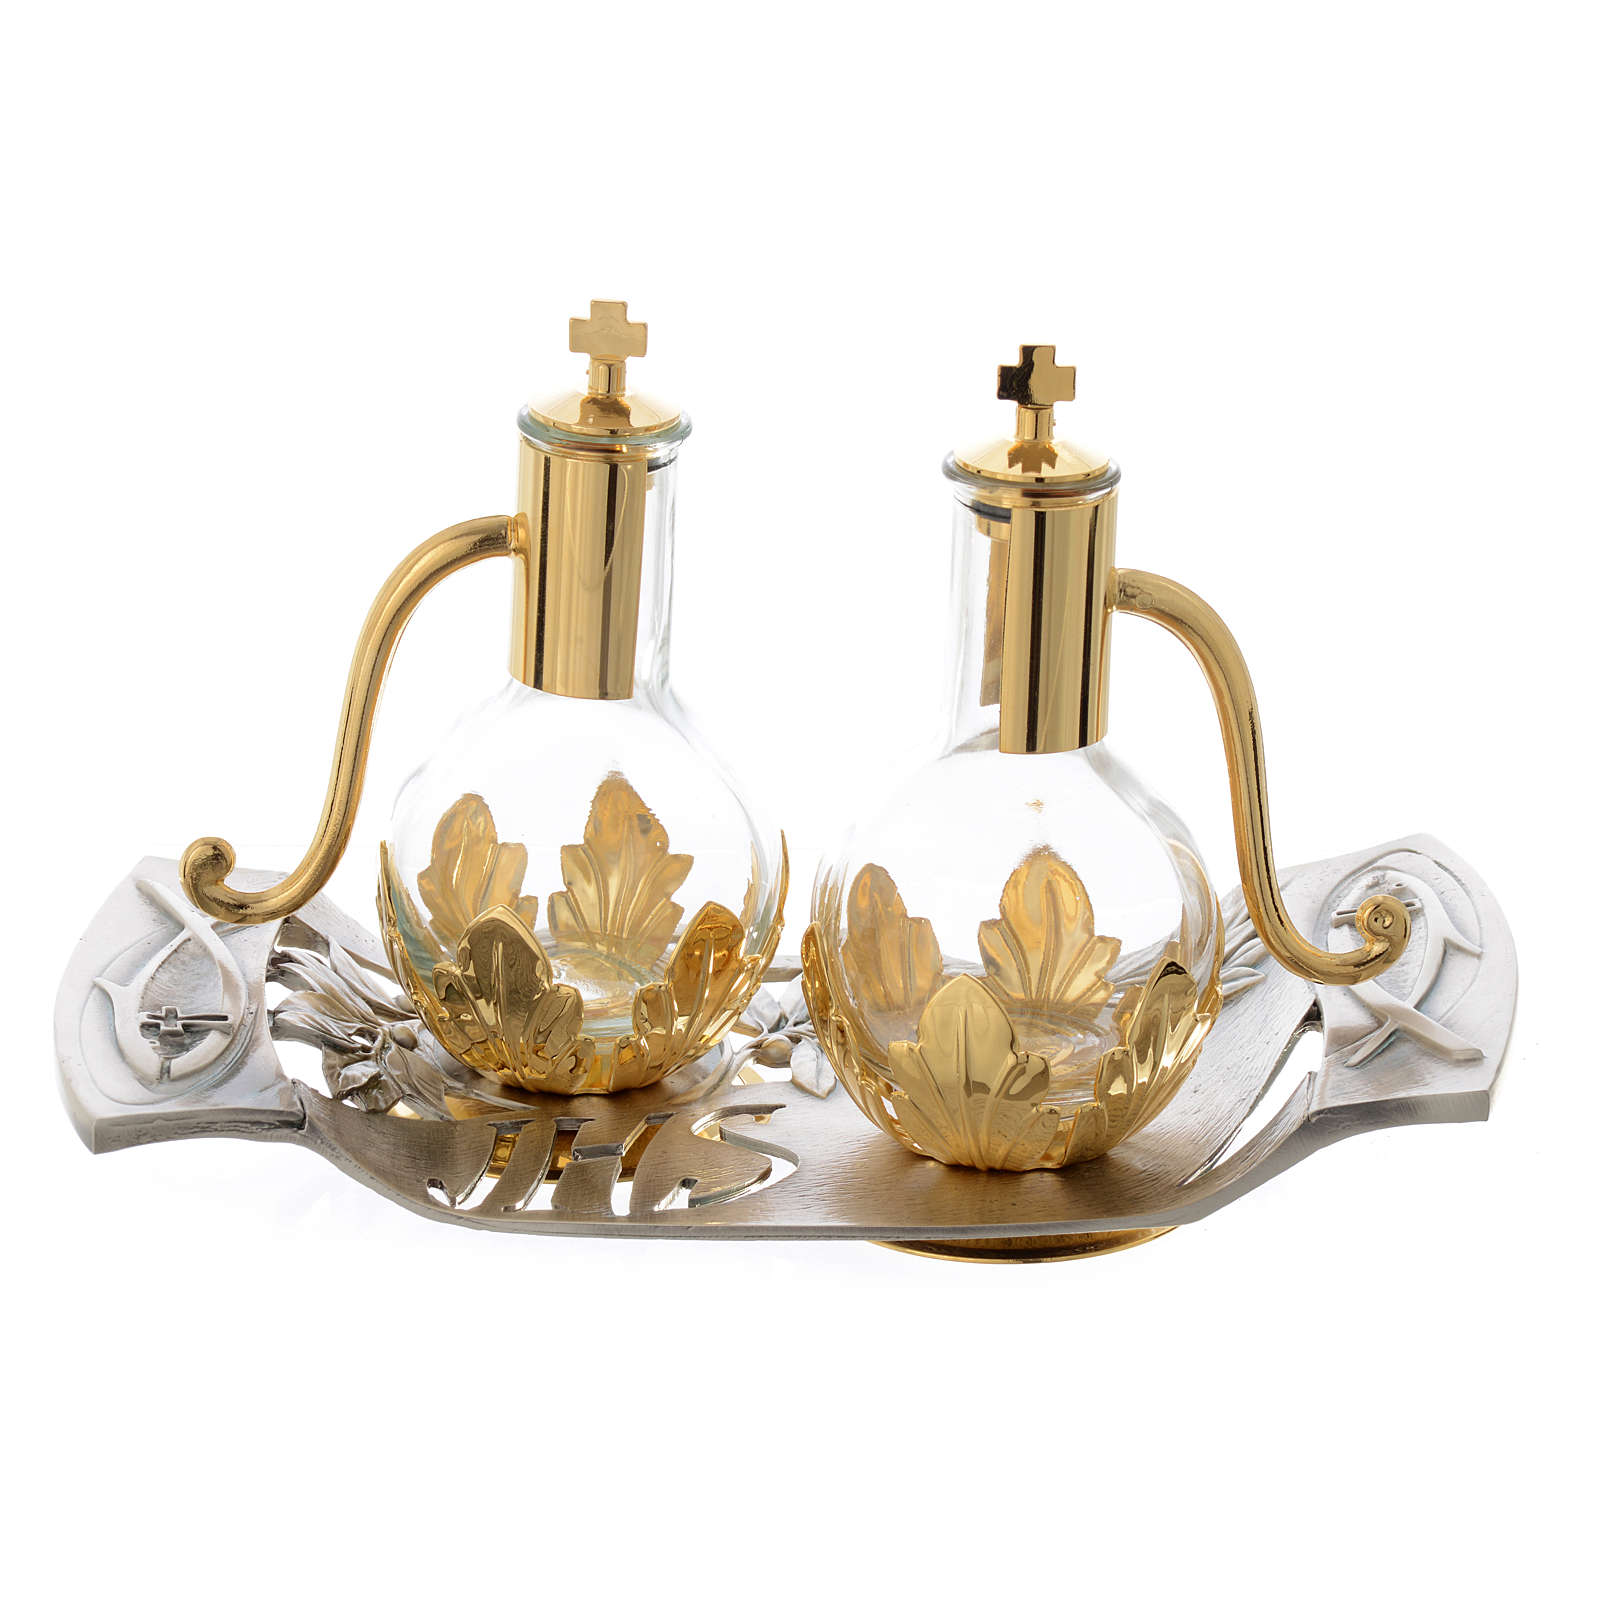 Cruet set with pewter tray with leaves and fish 4